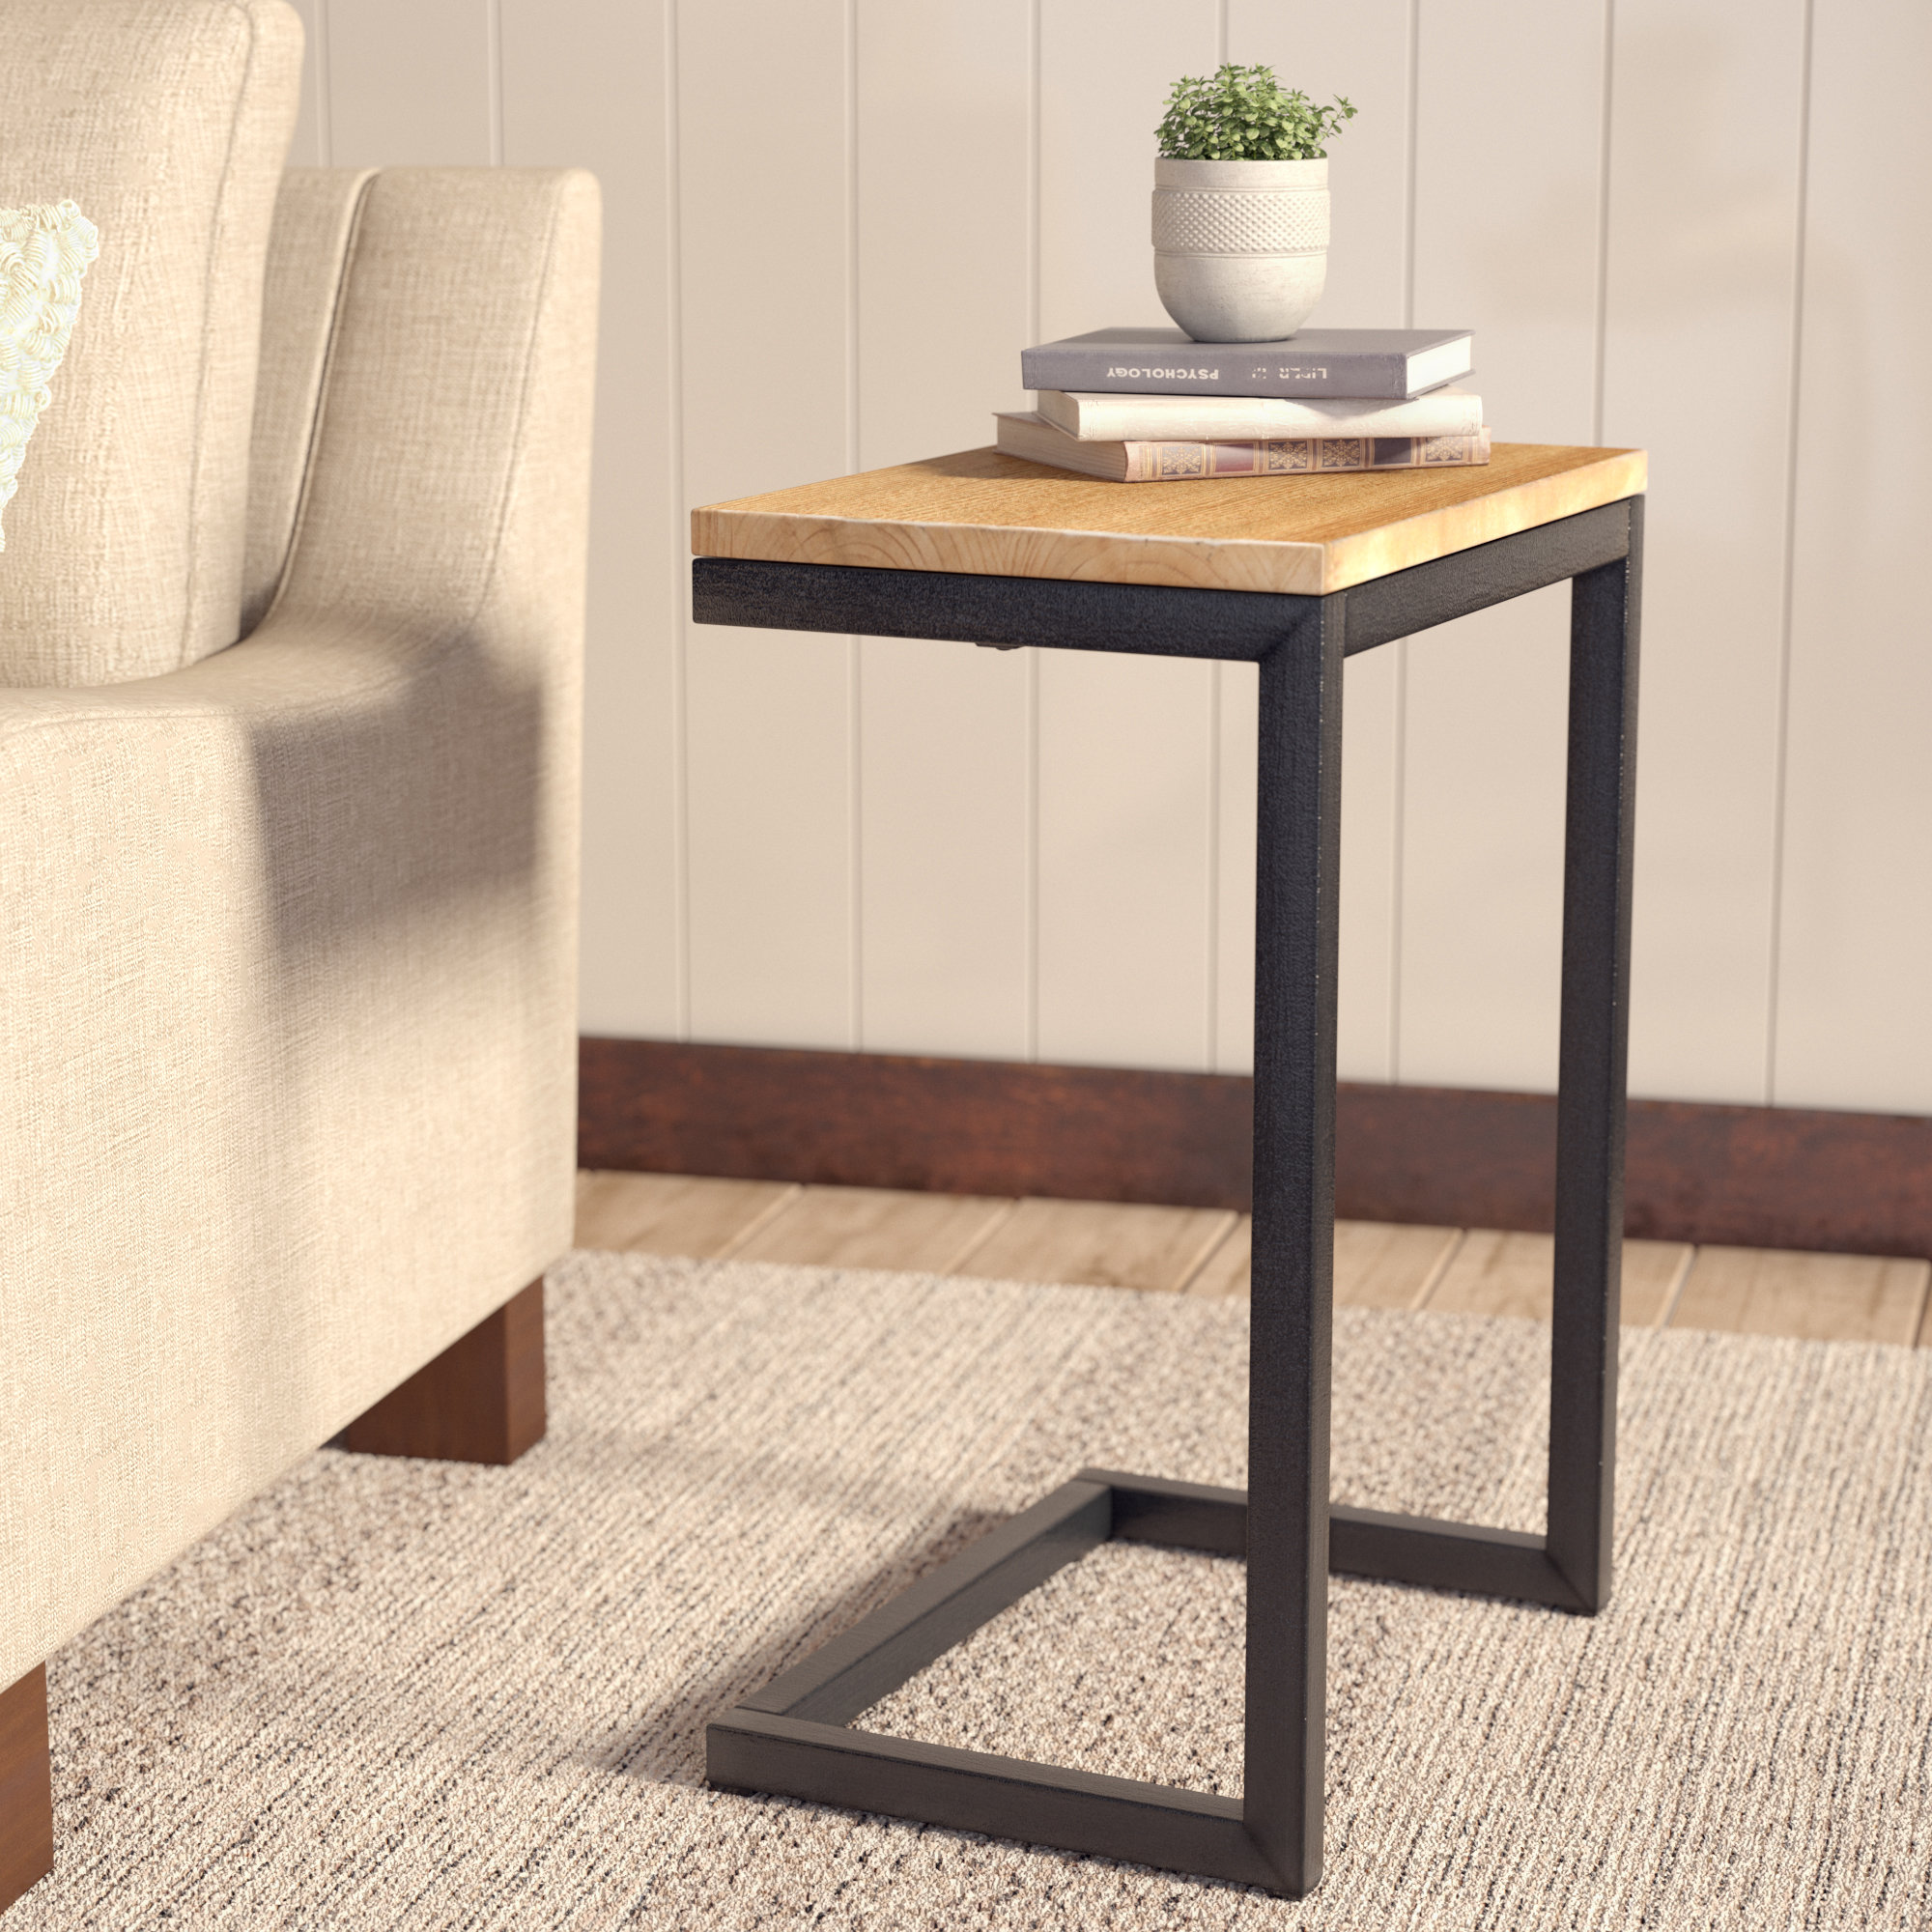 laurel foundry modern farmhouse nayara antique end table reviews accent furniture dining wood coffee set counter height breakfast pier one bedding painted ikea vanity lights half